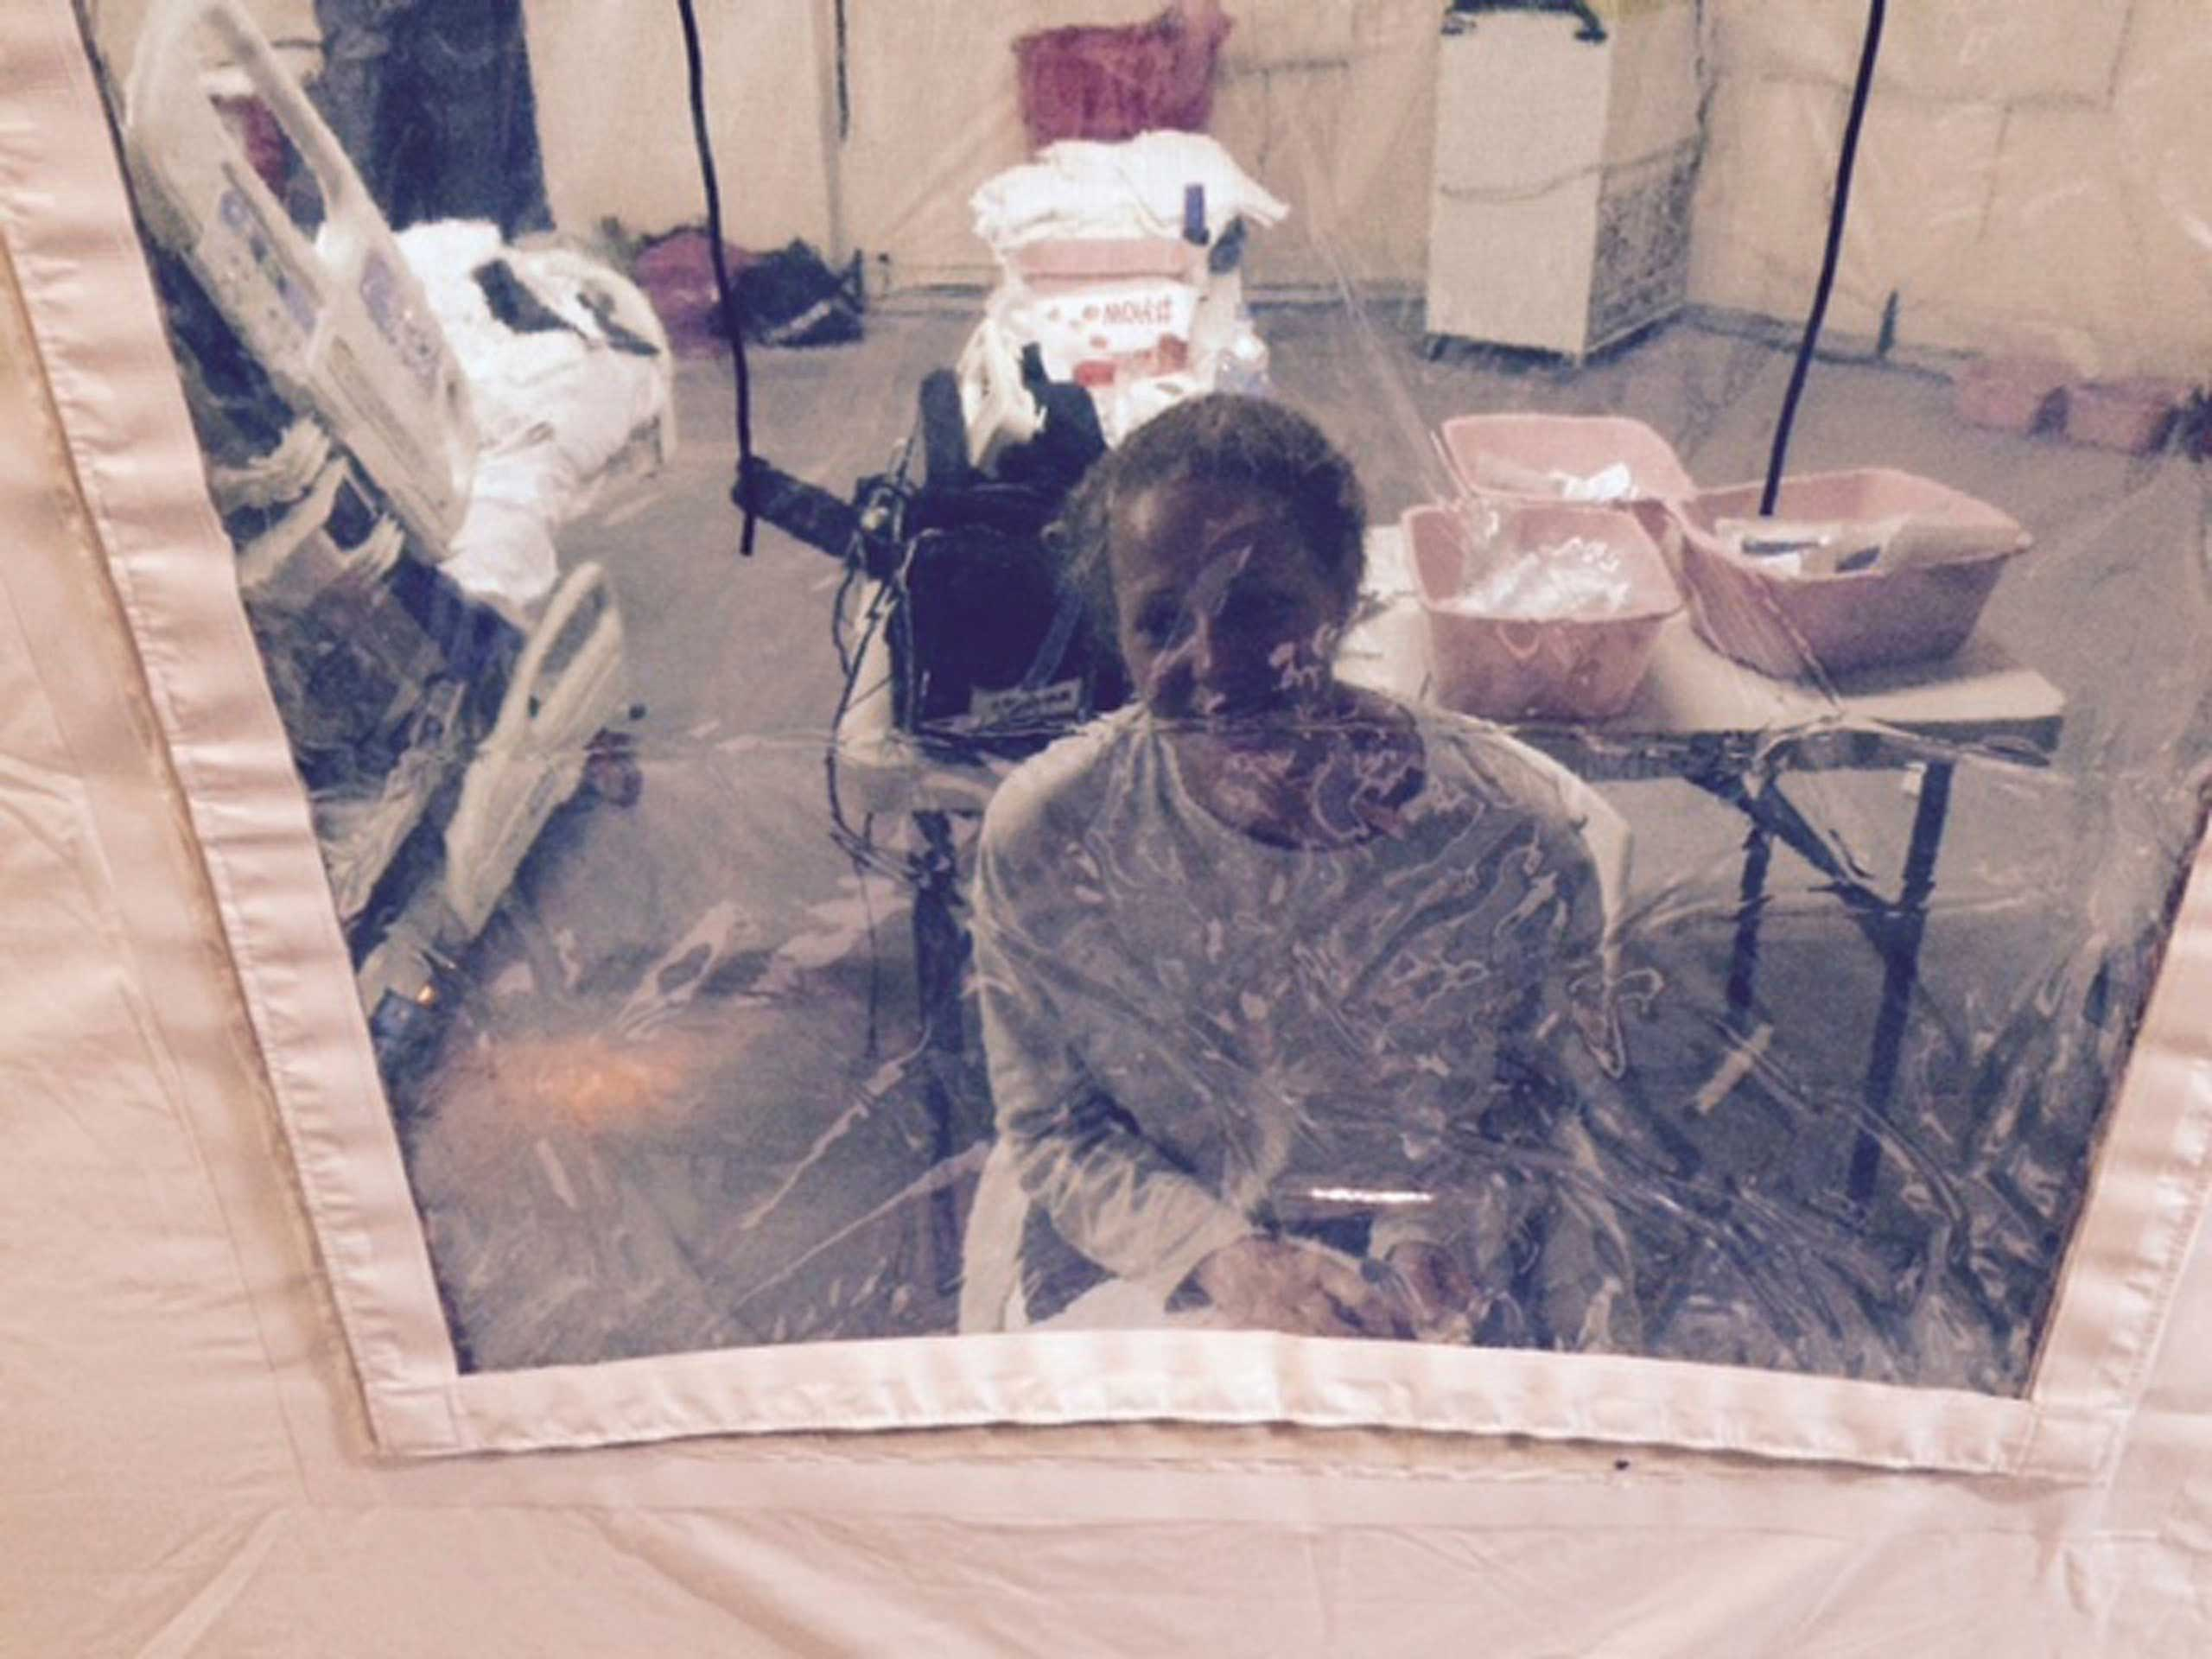 Kaci Hickox, a nurse who arrived in New Jersey on October 24 after treating Ebola patients in West Africa, seen in a hospital quarantine tent in Newark, New Jersey, Oct. 26, 2014.